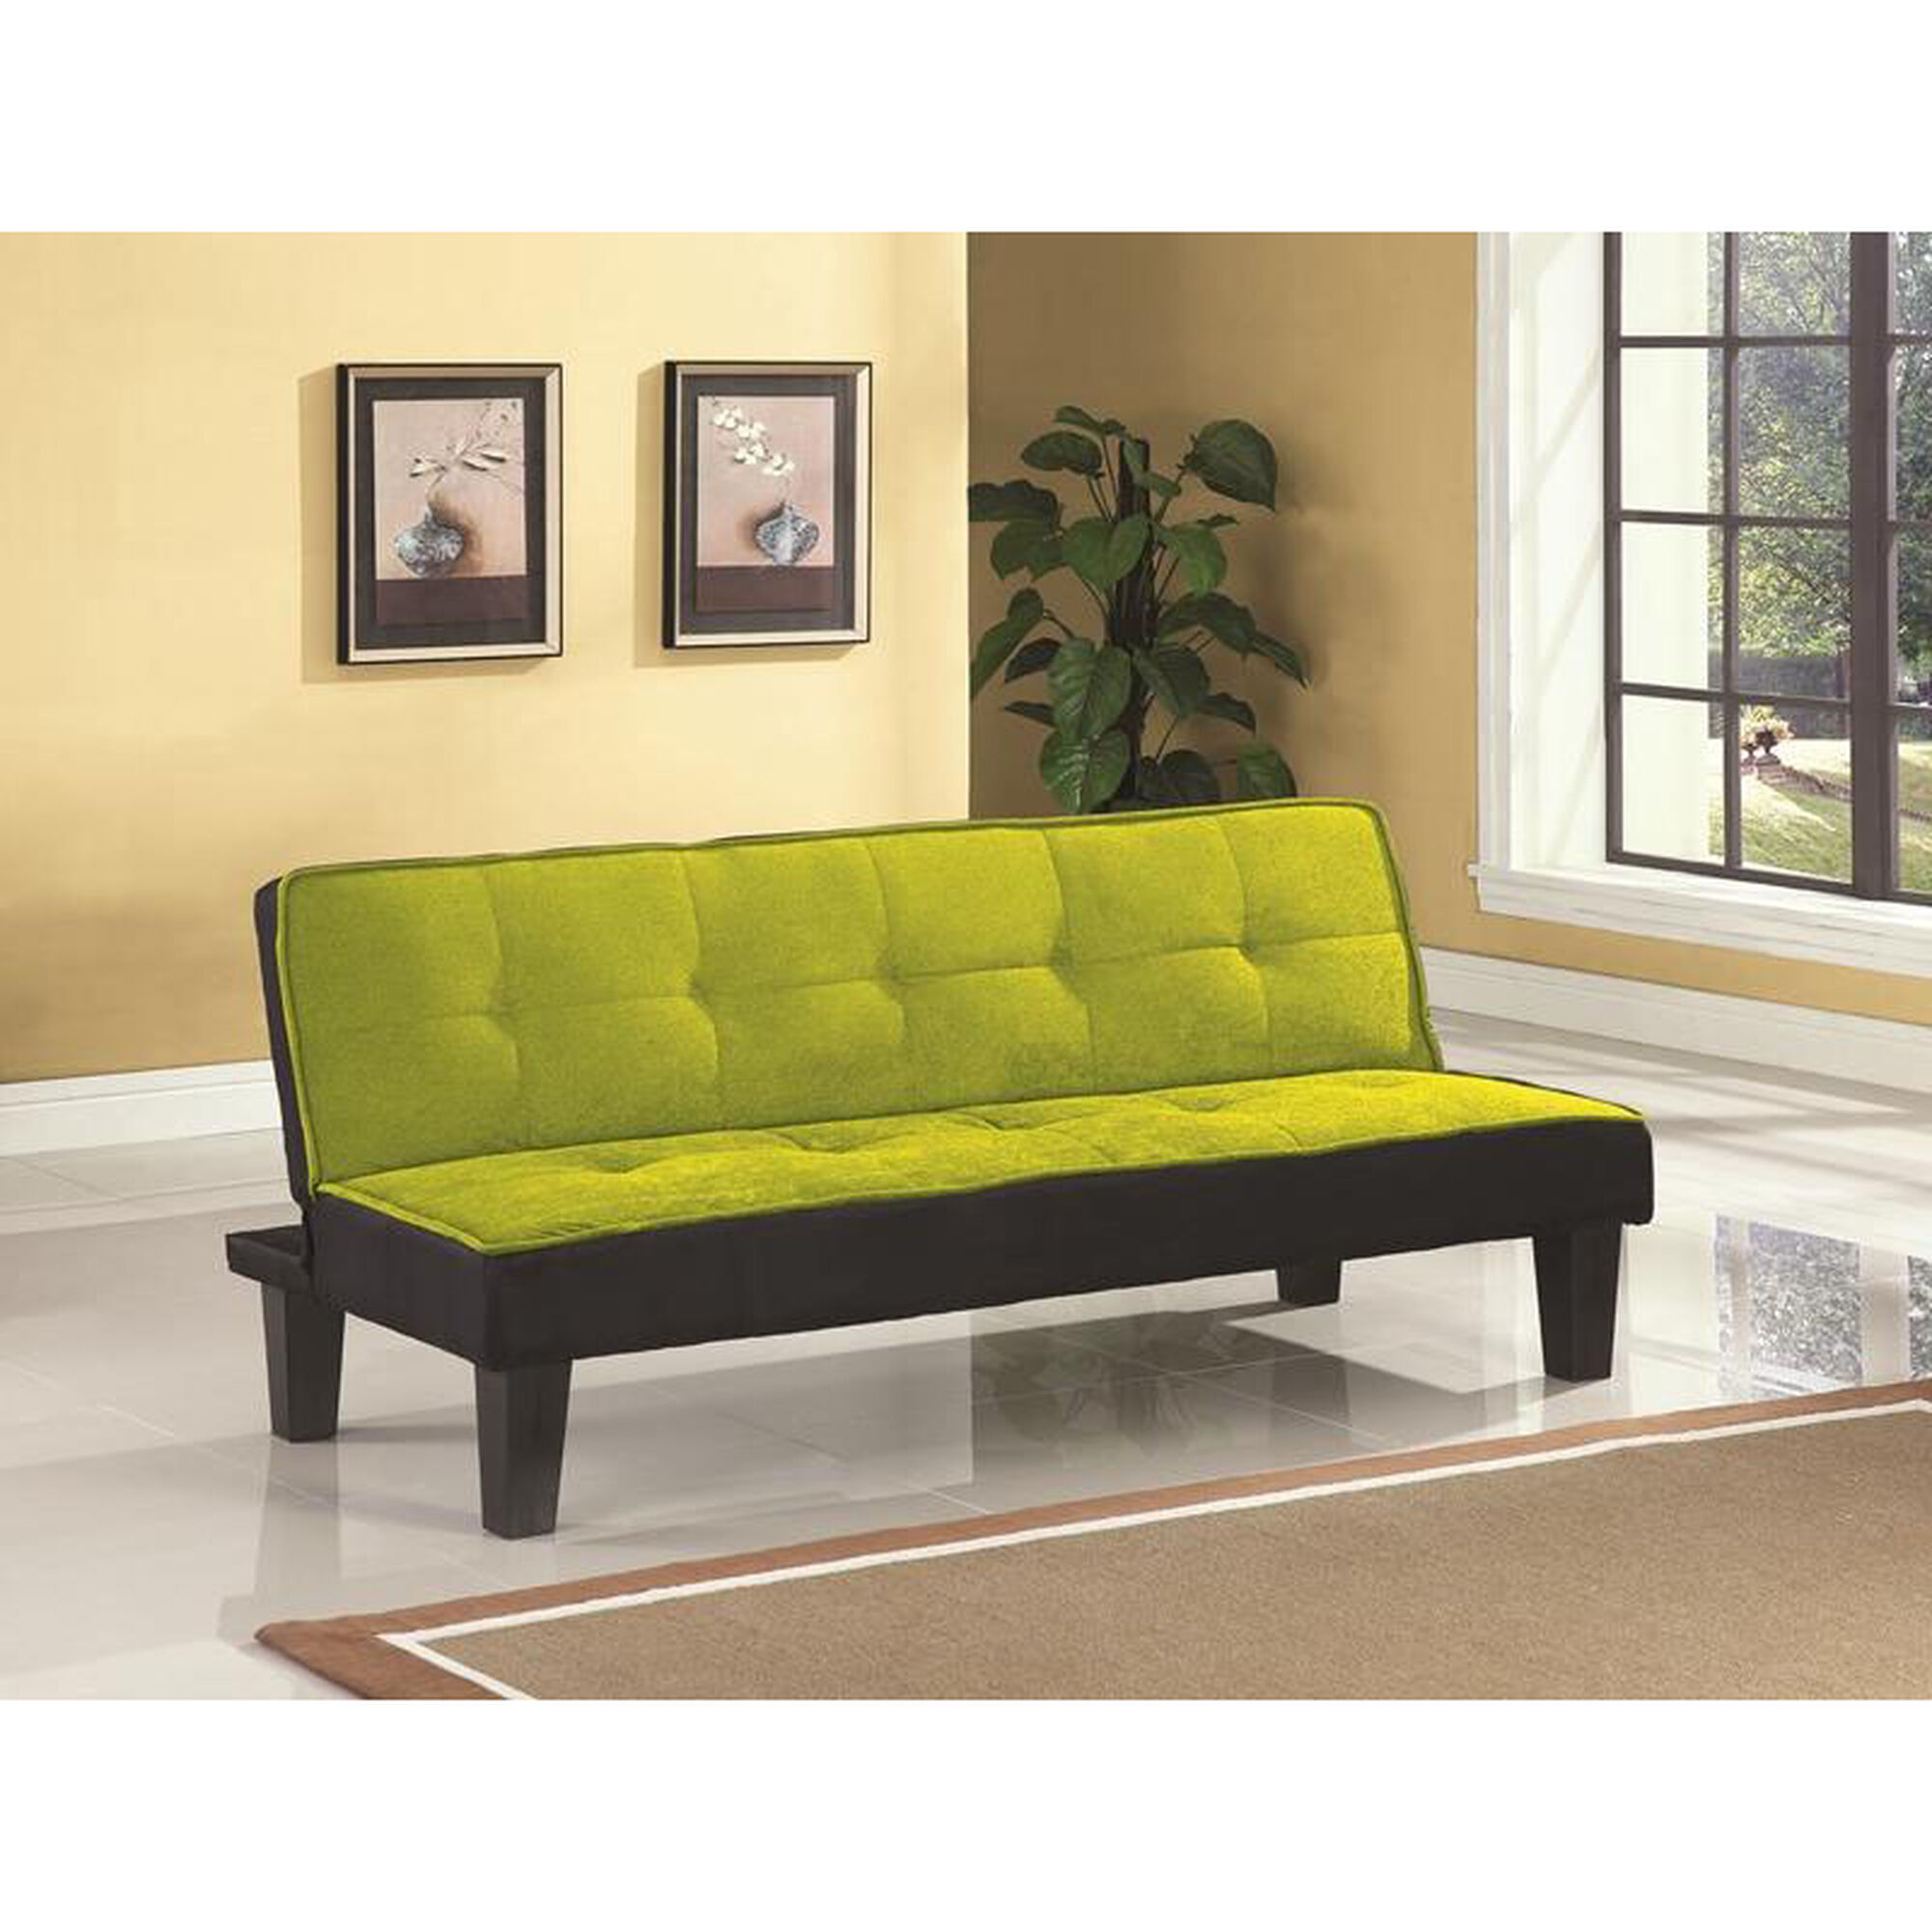 Fantastic Hamar Adjustable Sofa With Tufted Fabric Seat And Back Green Unemploymentrelief Wooden Chair Designs For Living Room Unemploymentrelieforg